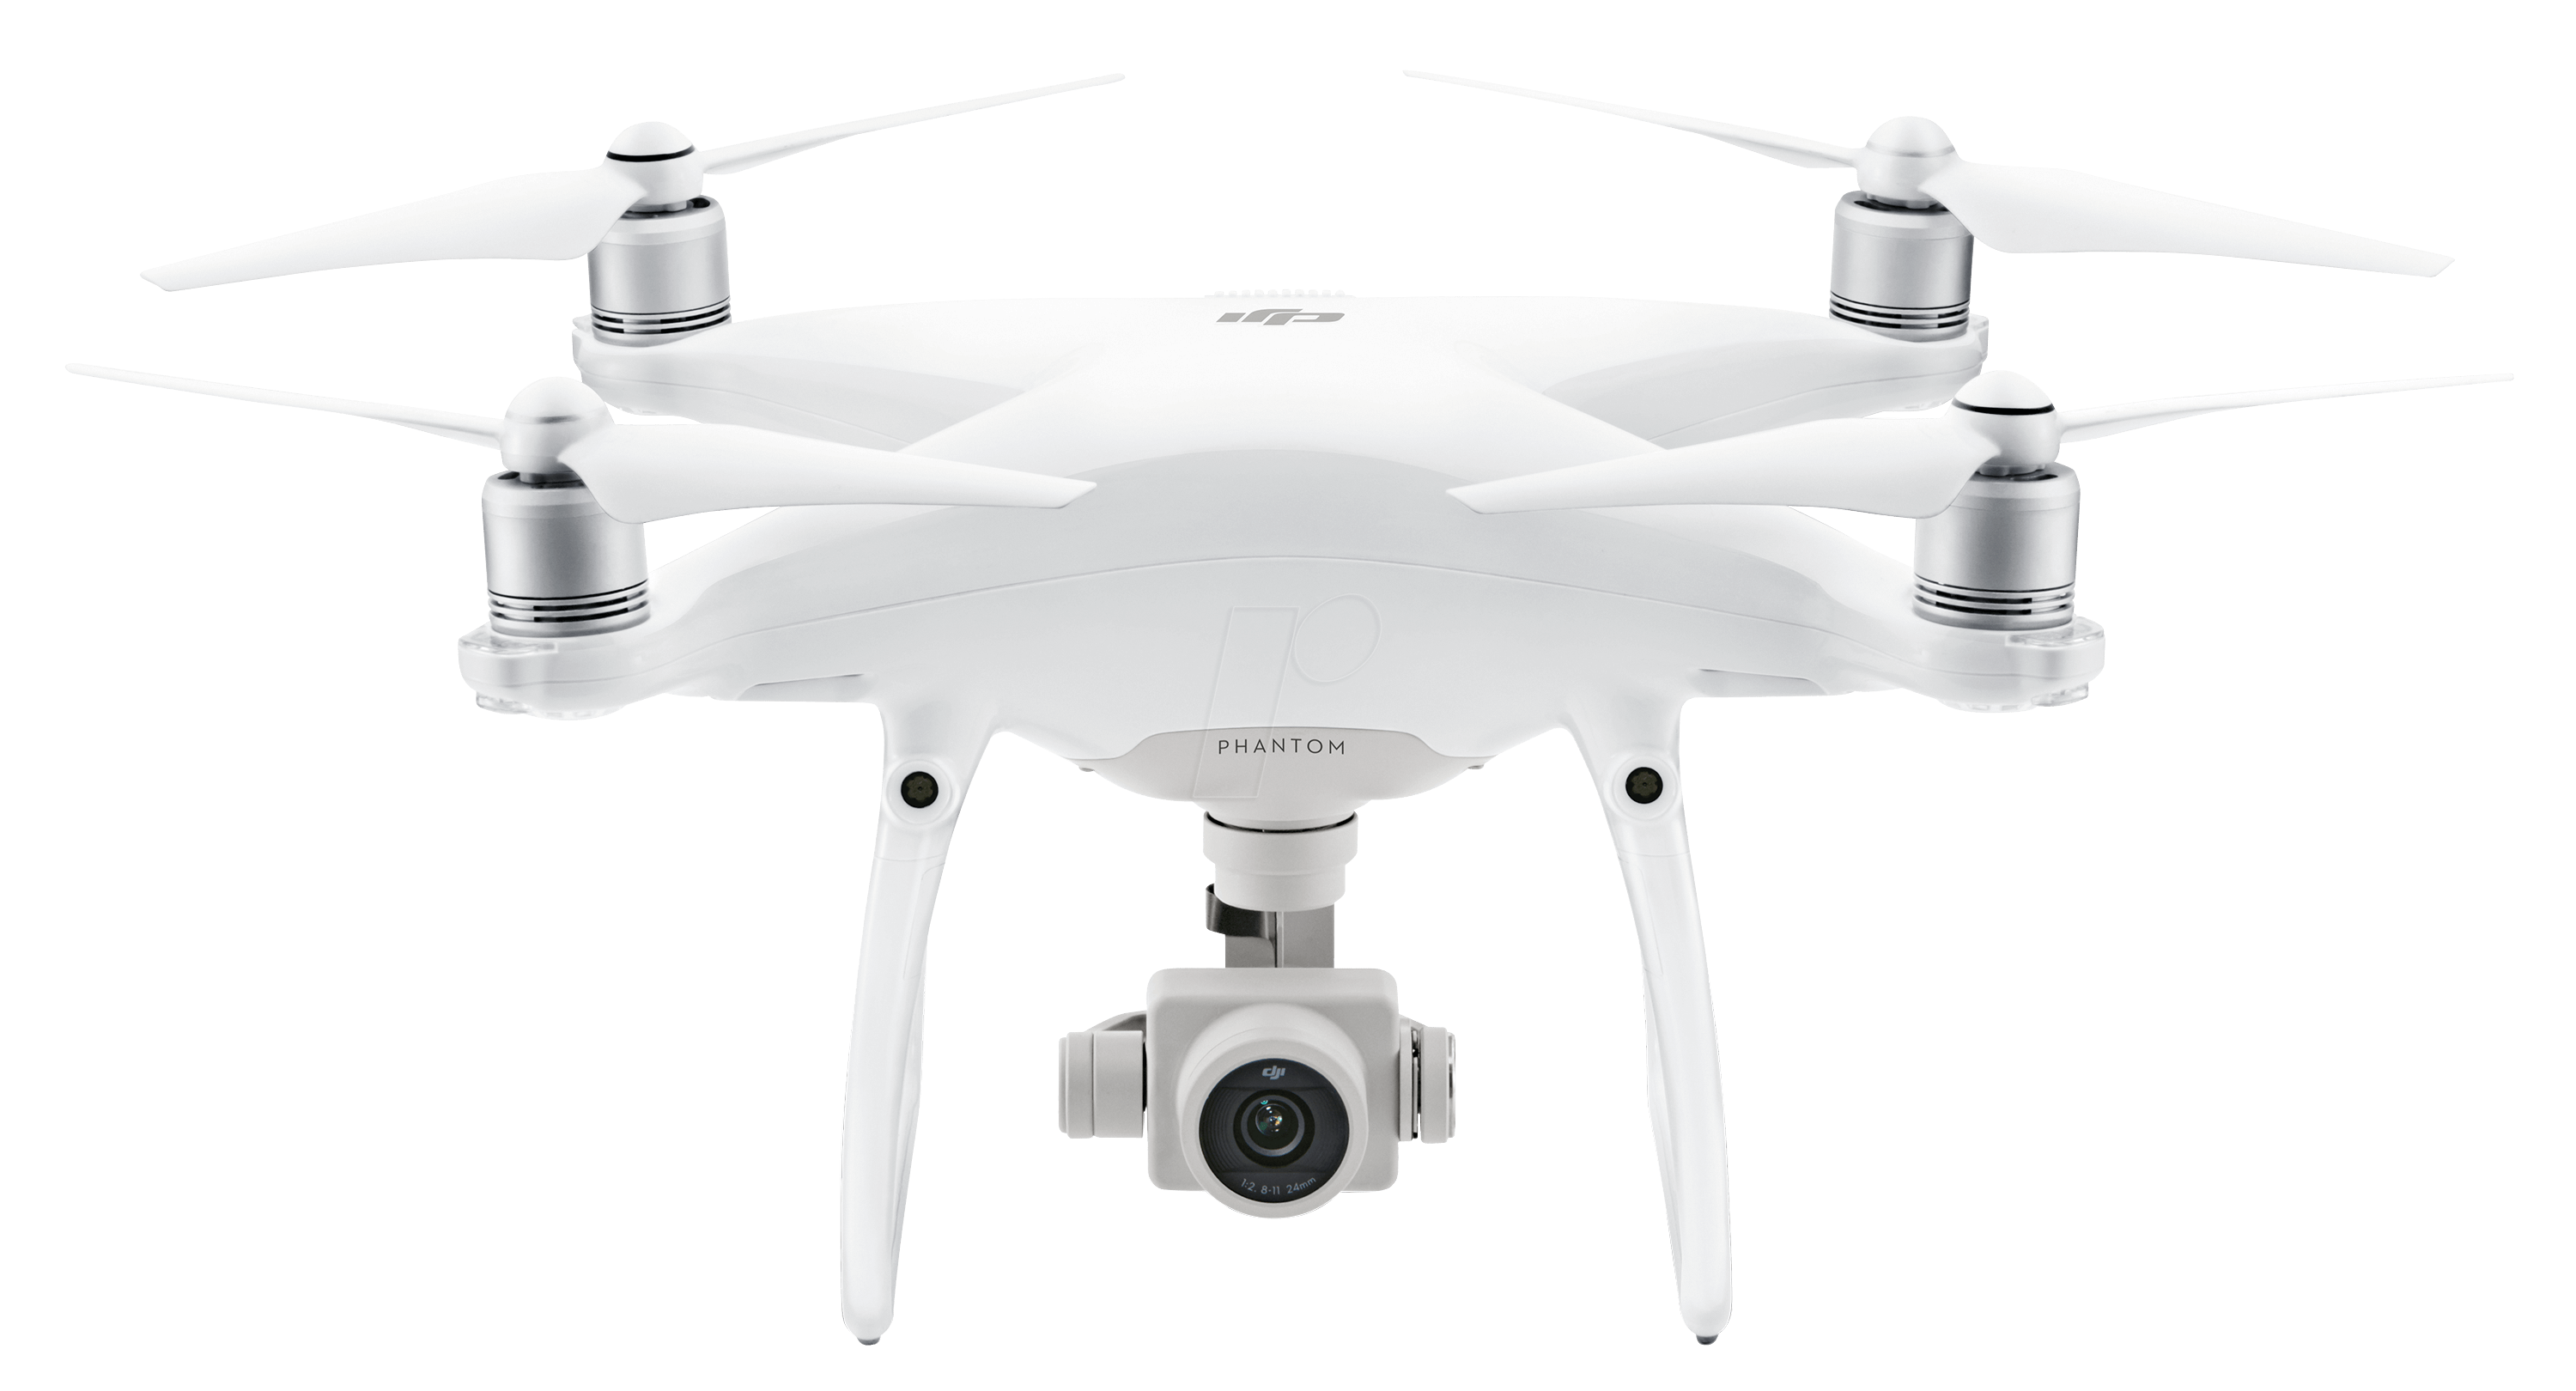 DJI P4 ADVANCED - Quadrocopter, Phantom 4 Advanced